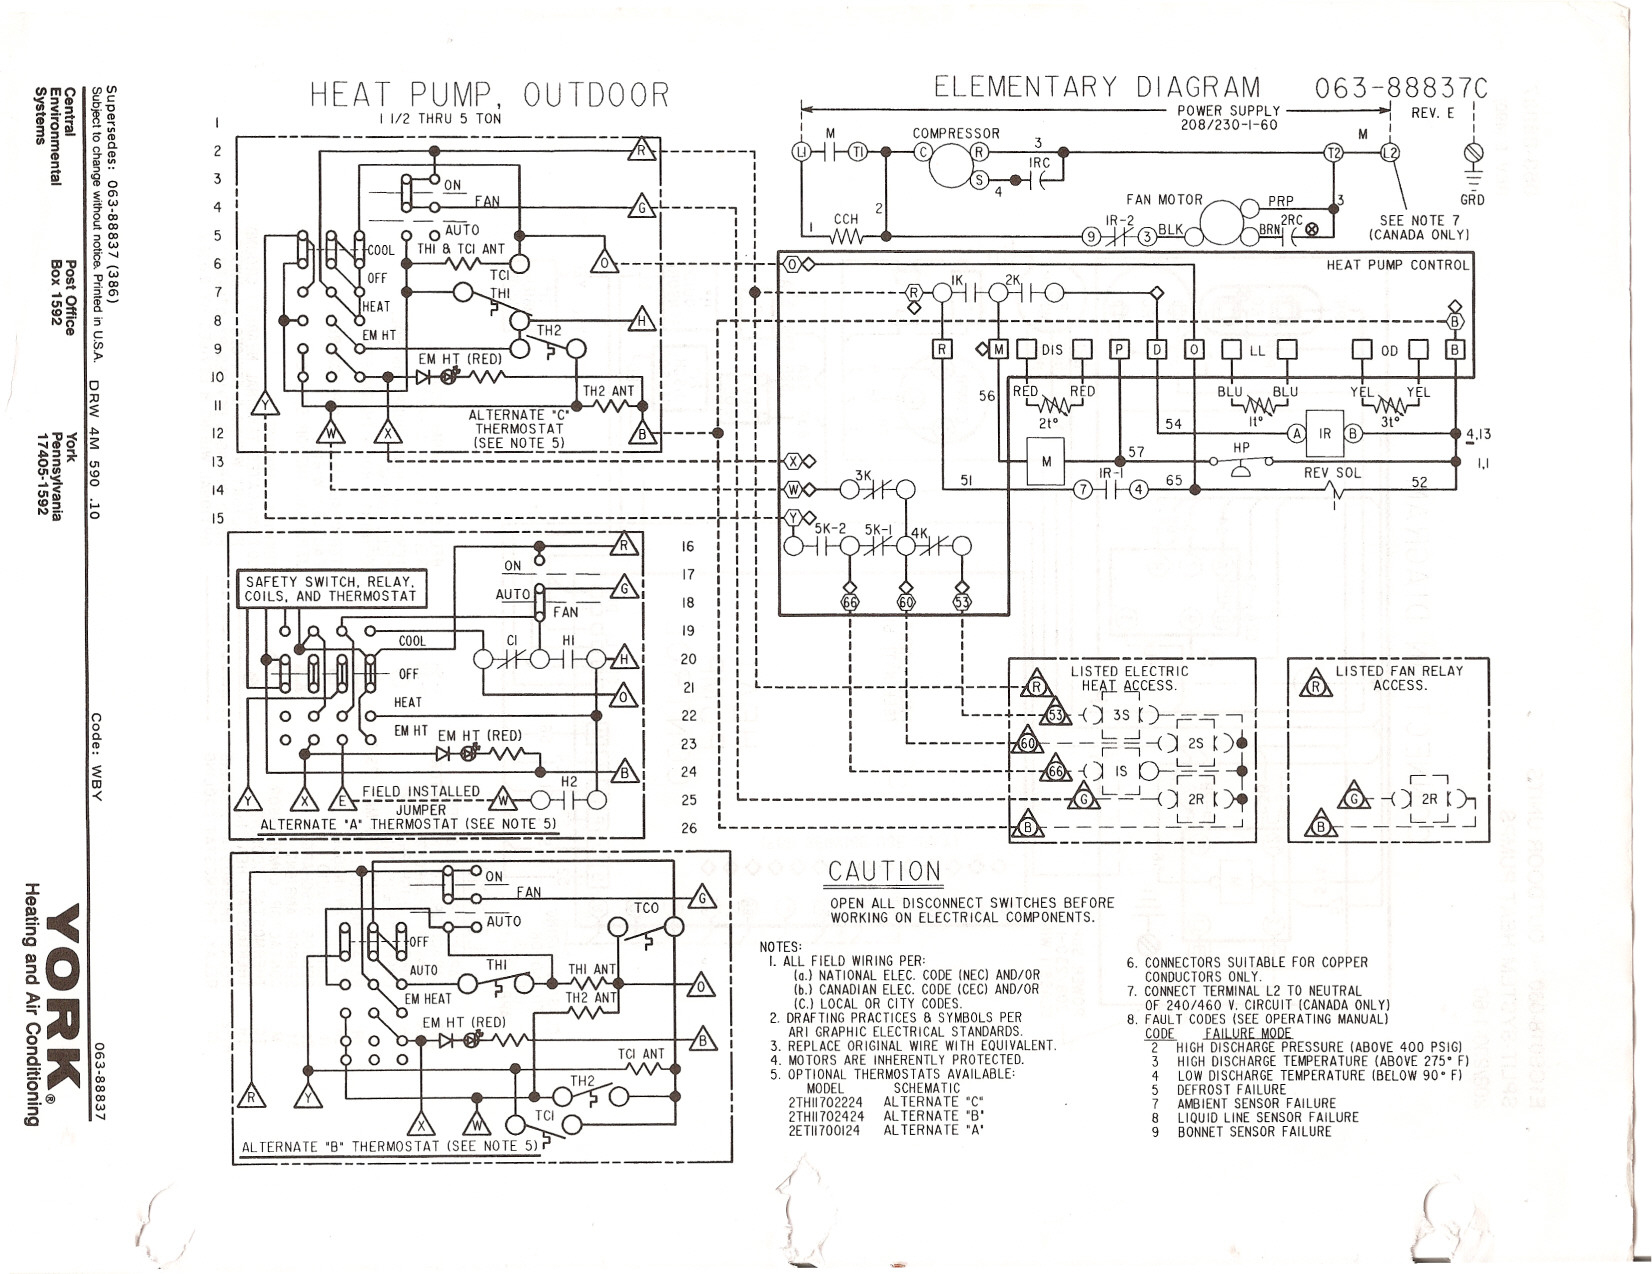 York Ac Wires Diagram | Manual E-Books - Wiring Diagram For York Heat Pump To Nest Thermostat